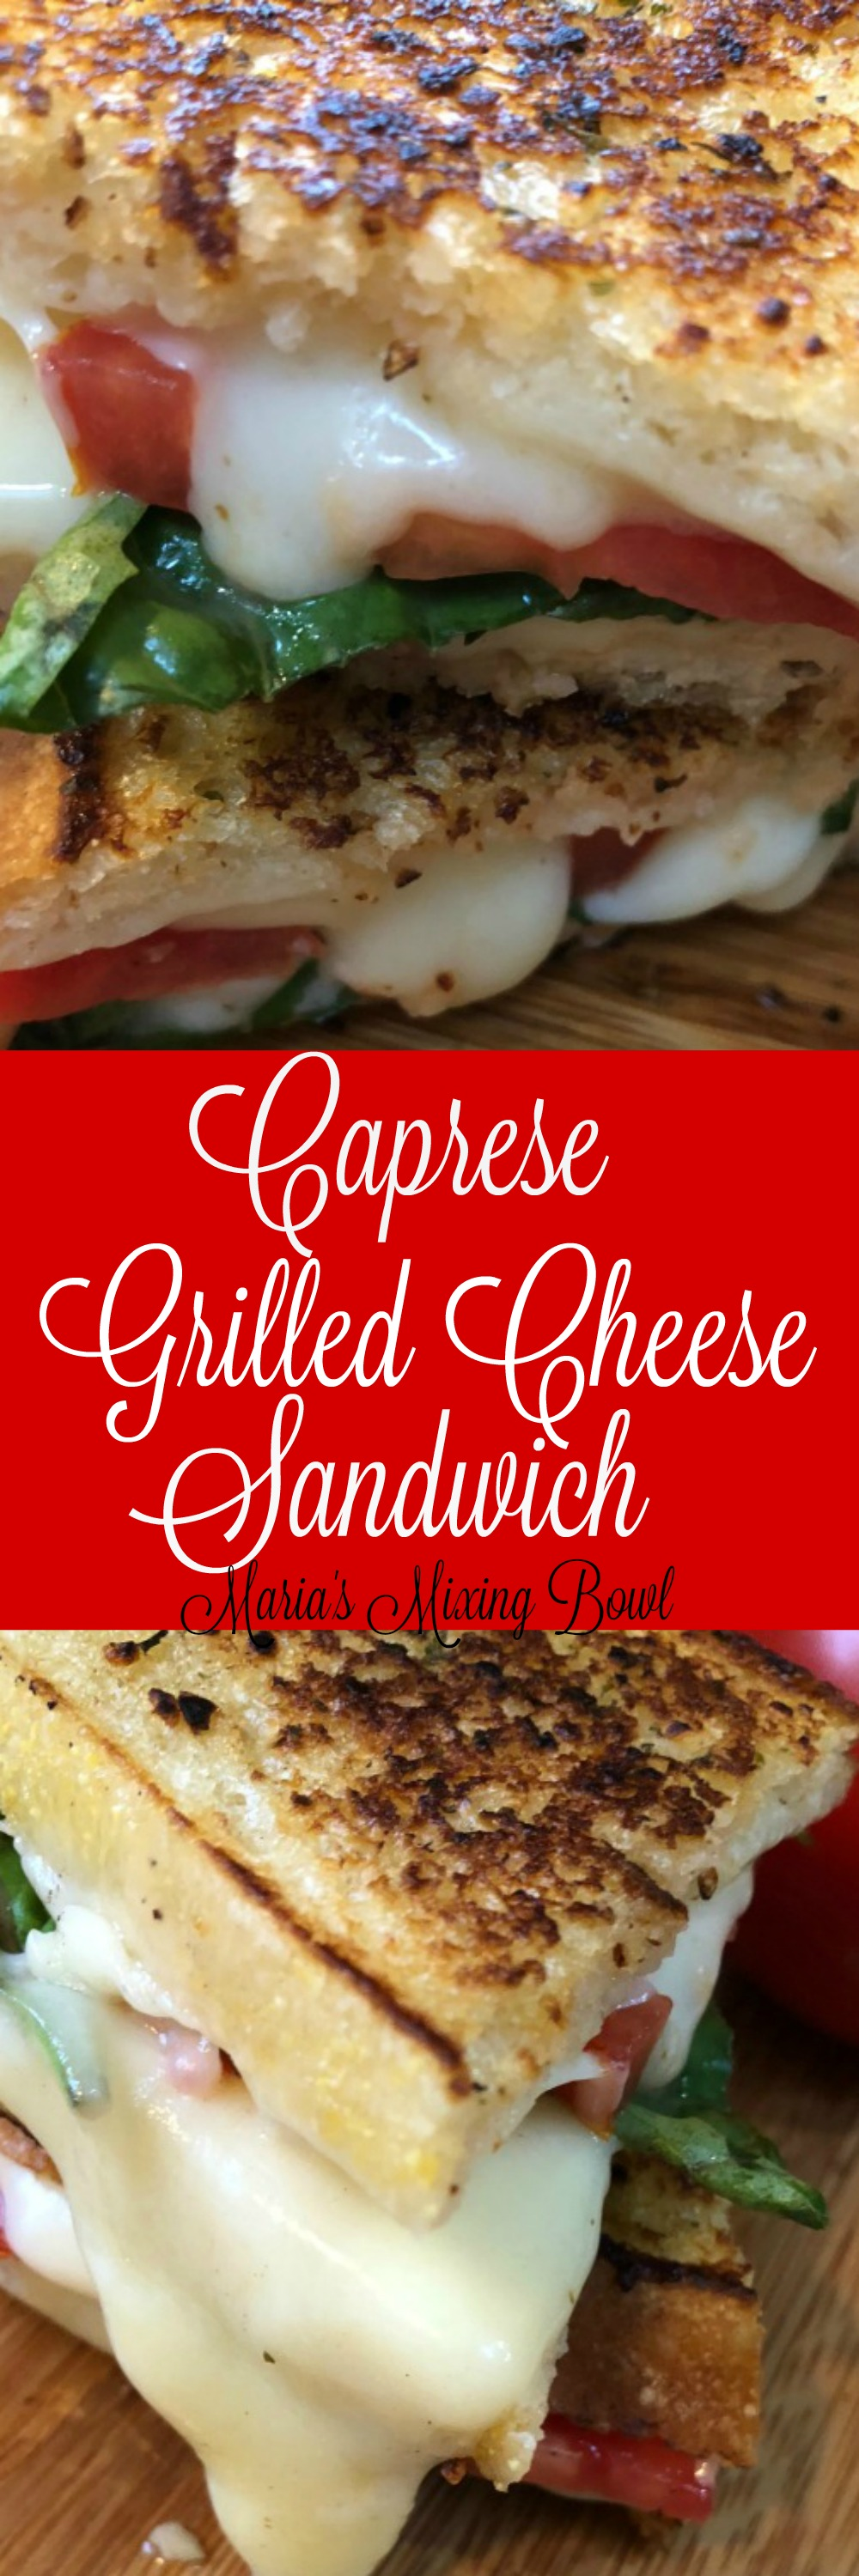 Caprese Grilled Cheese Recipe - One of my favorite summer side dishes between two slices of hearty bread grilled golden brown. Fresh garden tomatoes, mozzarella cheese and fresh basil! Makes for the BEST grilled cheese ever!